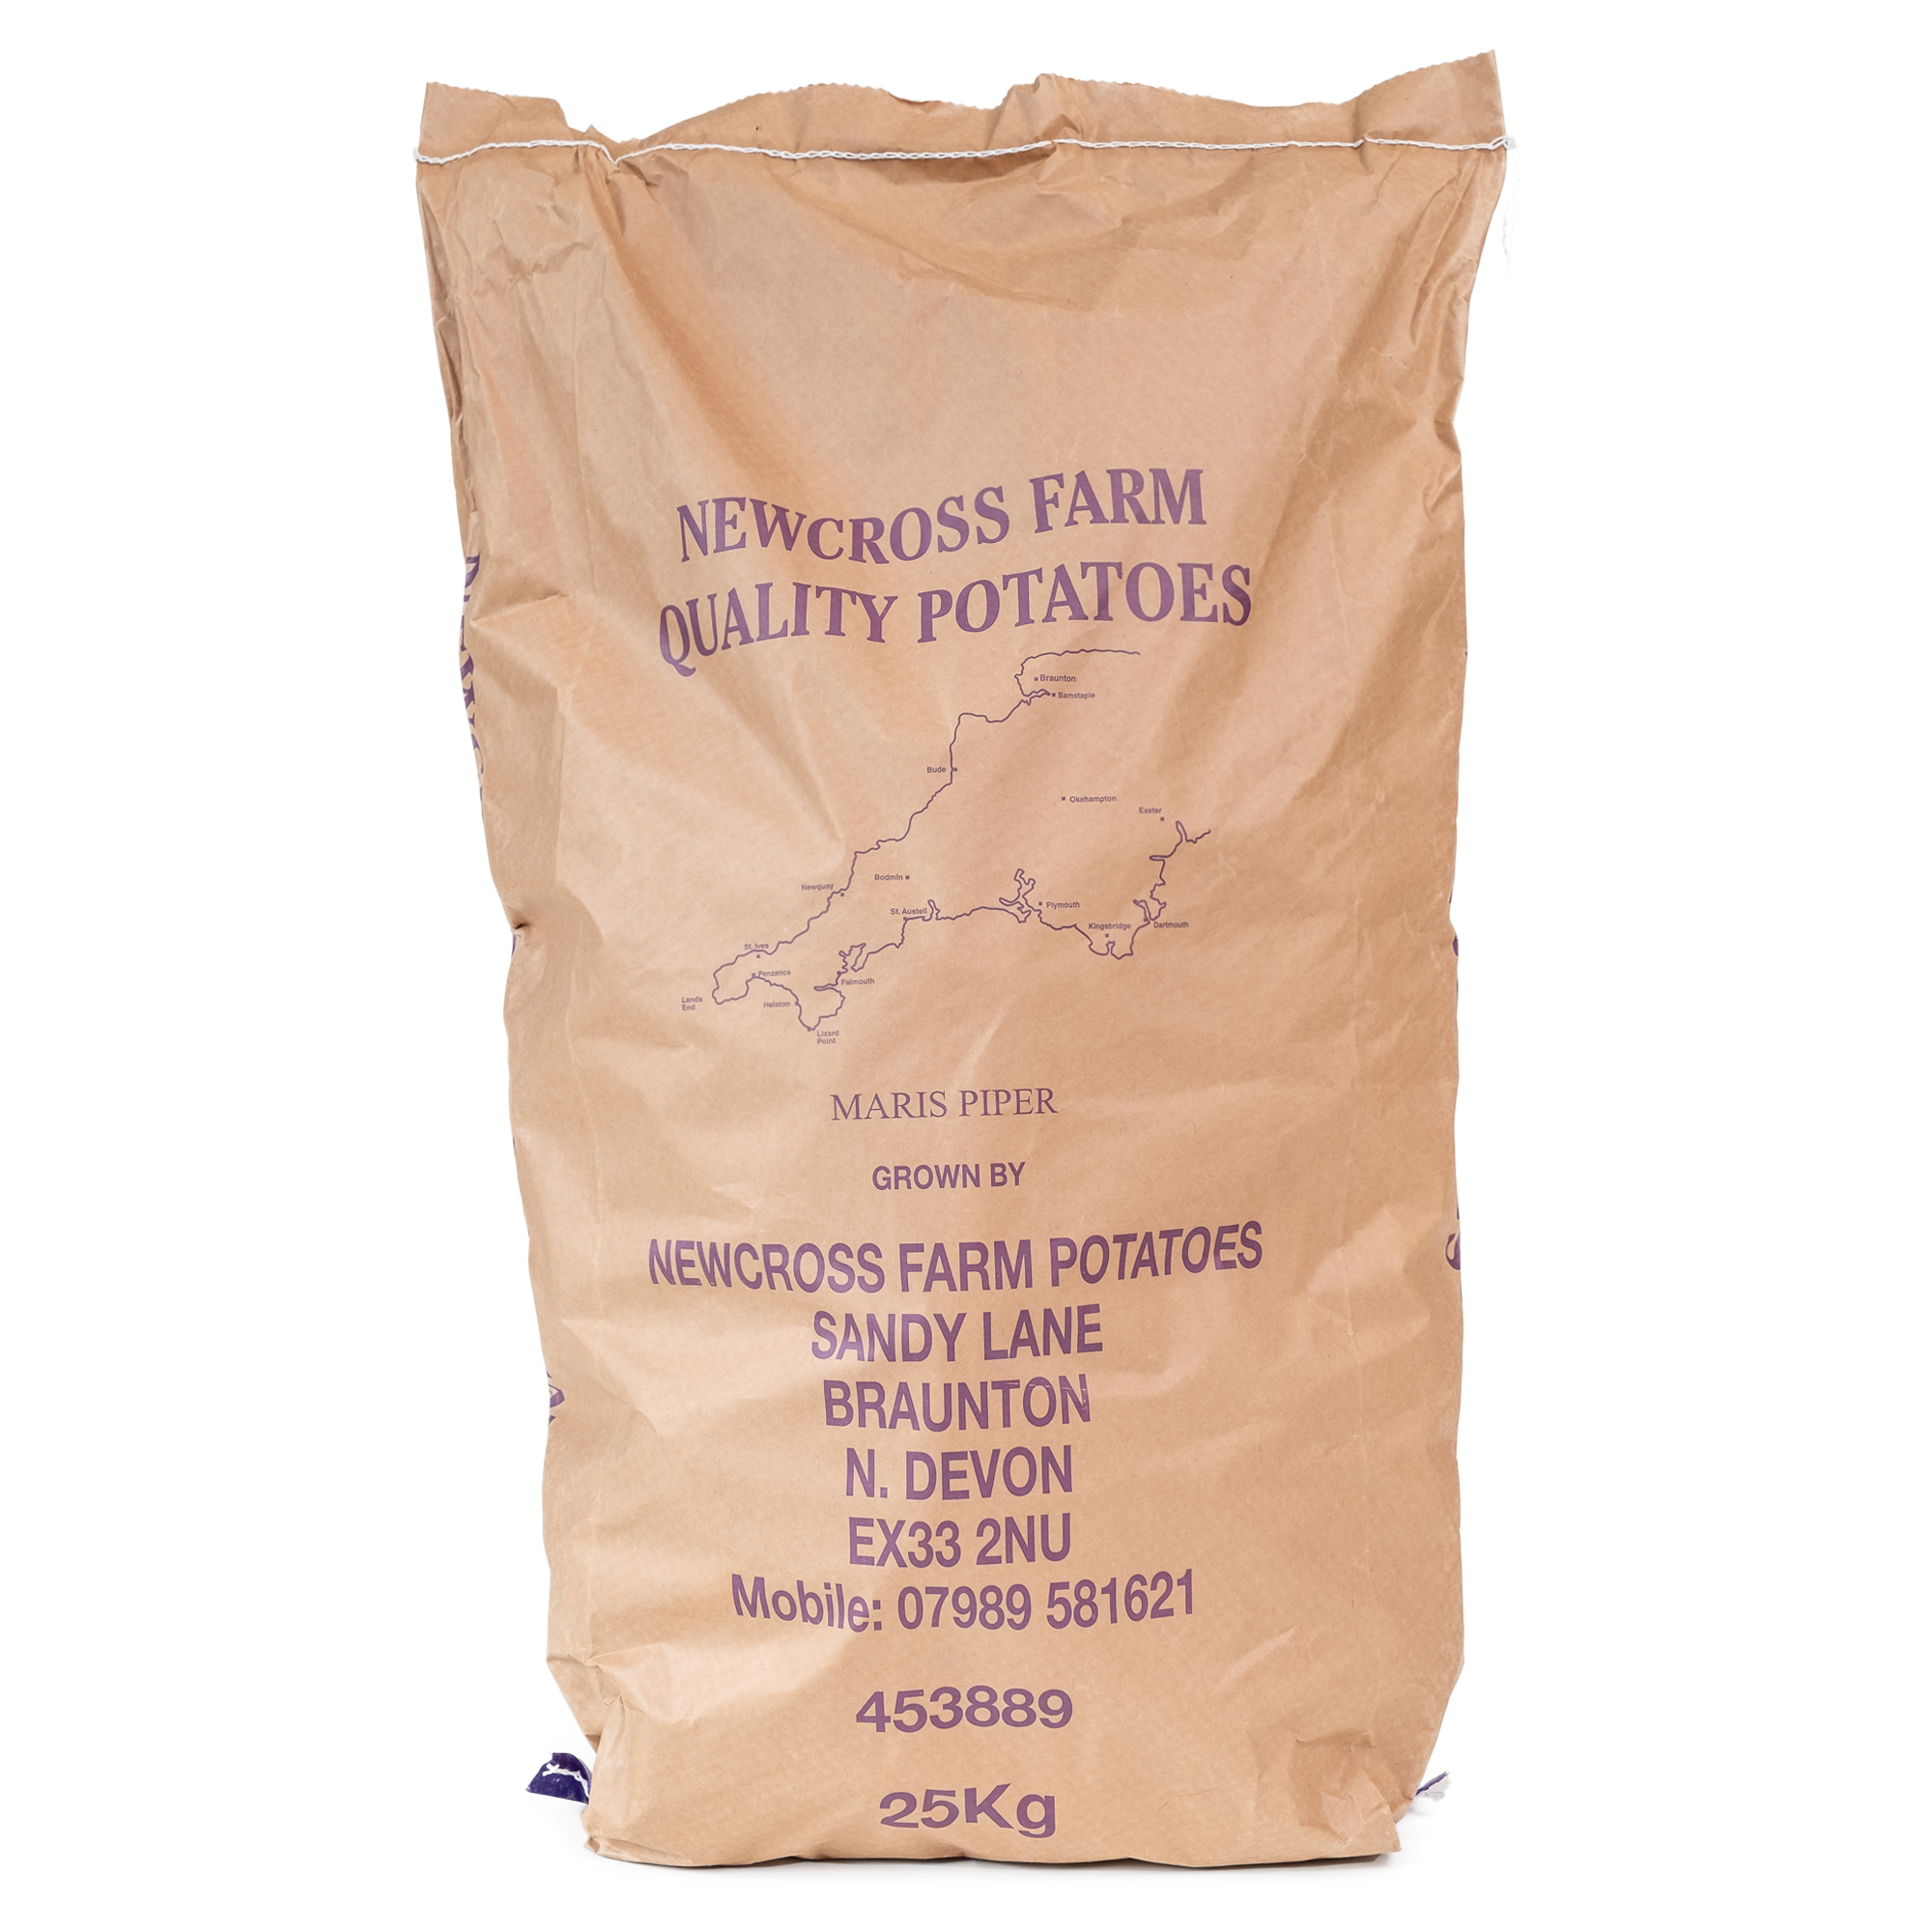 Potatoes - Maris Piper 25kg